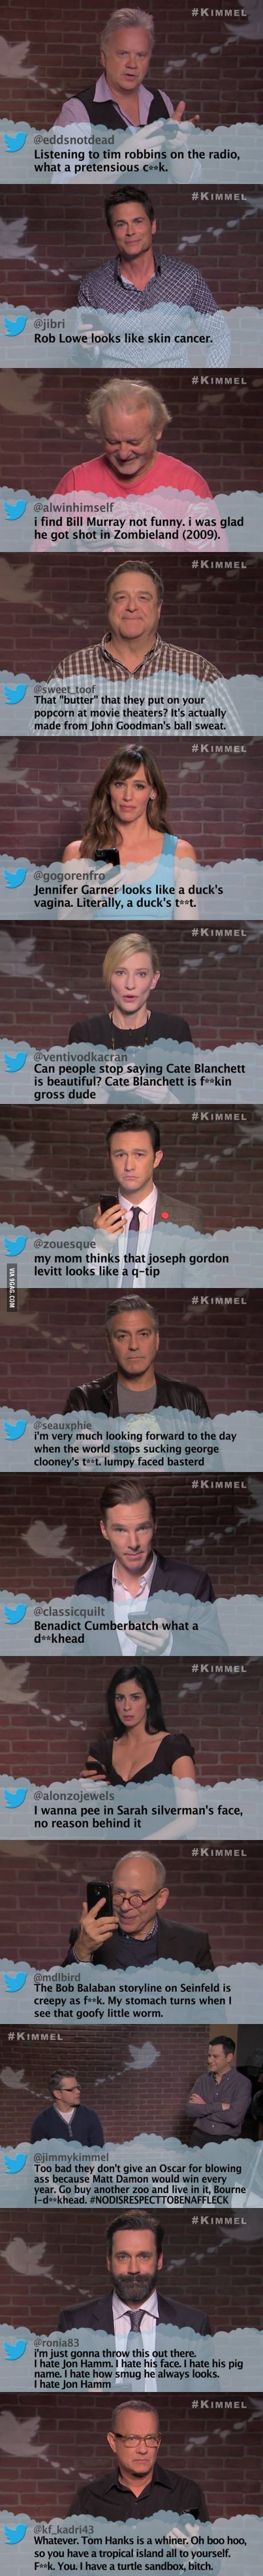 Celebrities read mean tweets....they are so untrue but still funny